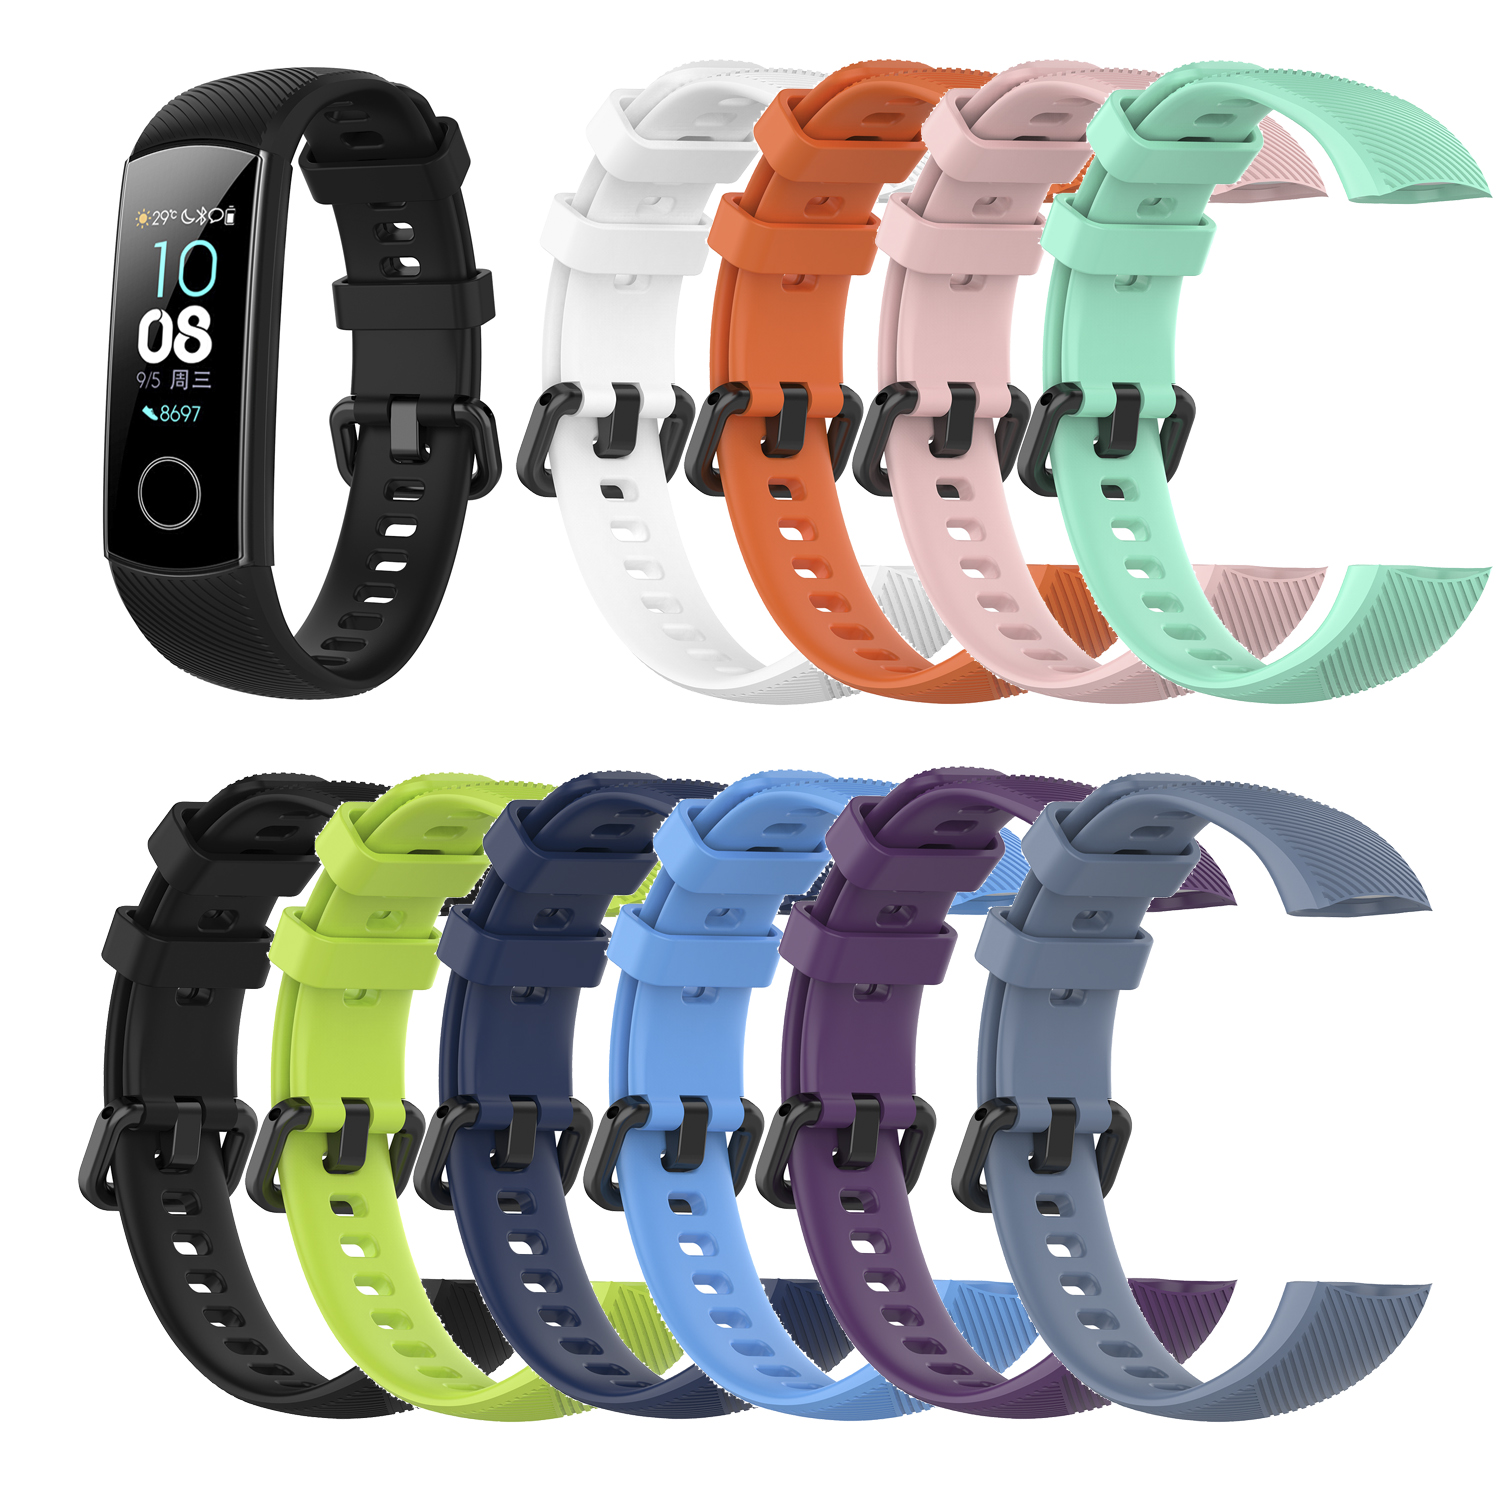 Wrist-Strap Watchband Smart-Tracker Sport-Fitness-Watch Huawei 5-Bracelet Belt-Accessories